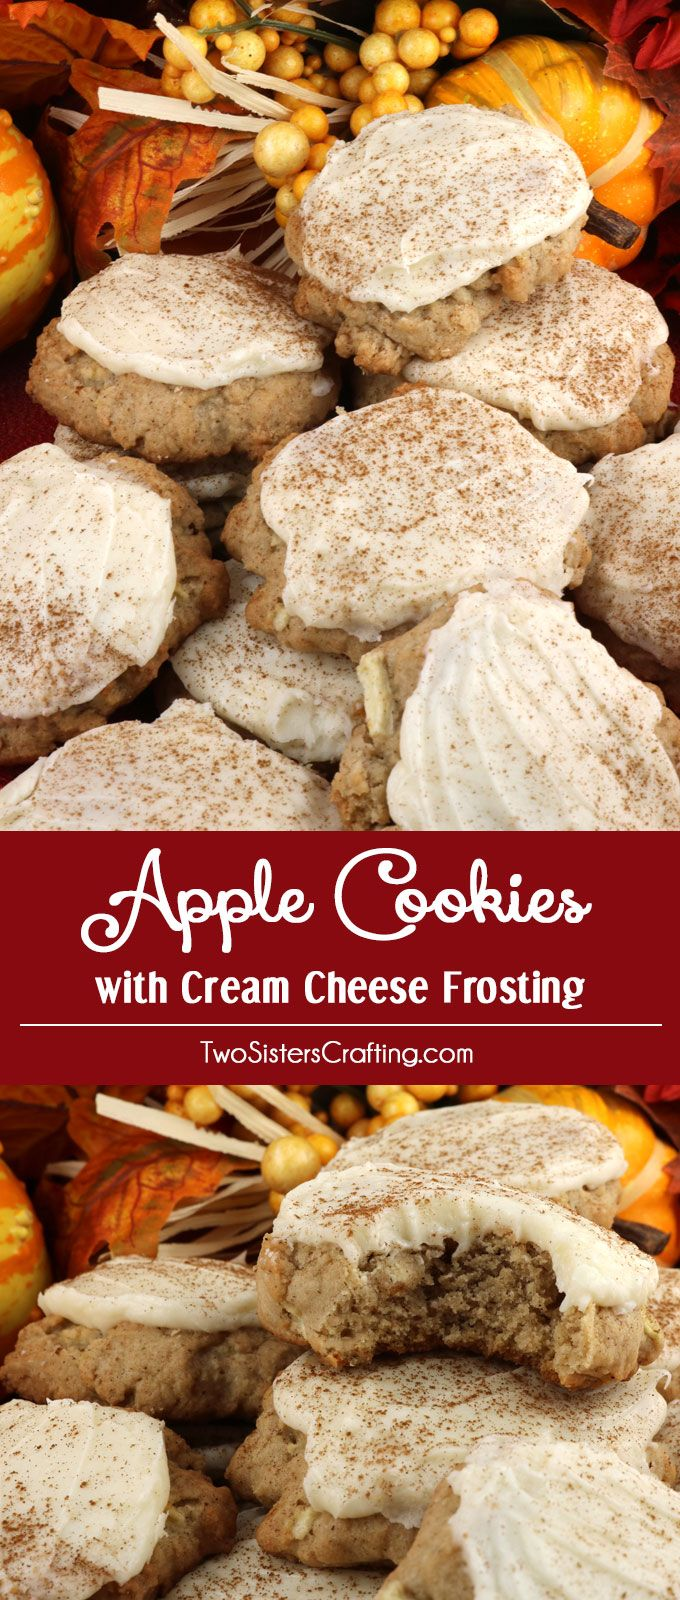 Apple Cookies with Cream Cheese Frosting are the perfect Fall Cookies and a wonderful choice for a Christmas Cookie Exchange. This cookie tastes just like Apple Pie which makes it a great Thanksgiving Dessert idea. And with the delicious frosting they will look beautiful on your Christmas Dessert Table. Pin this delicious cookie recipe for later and follow us for more great Christmas Food ideas.